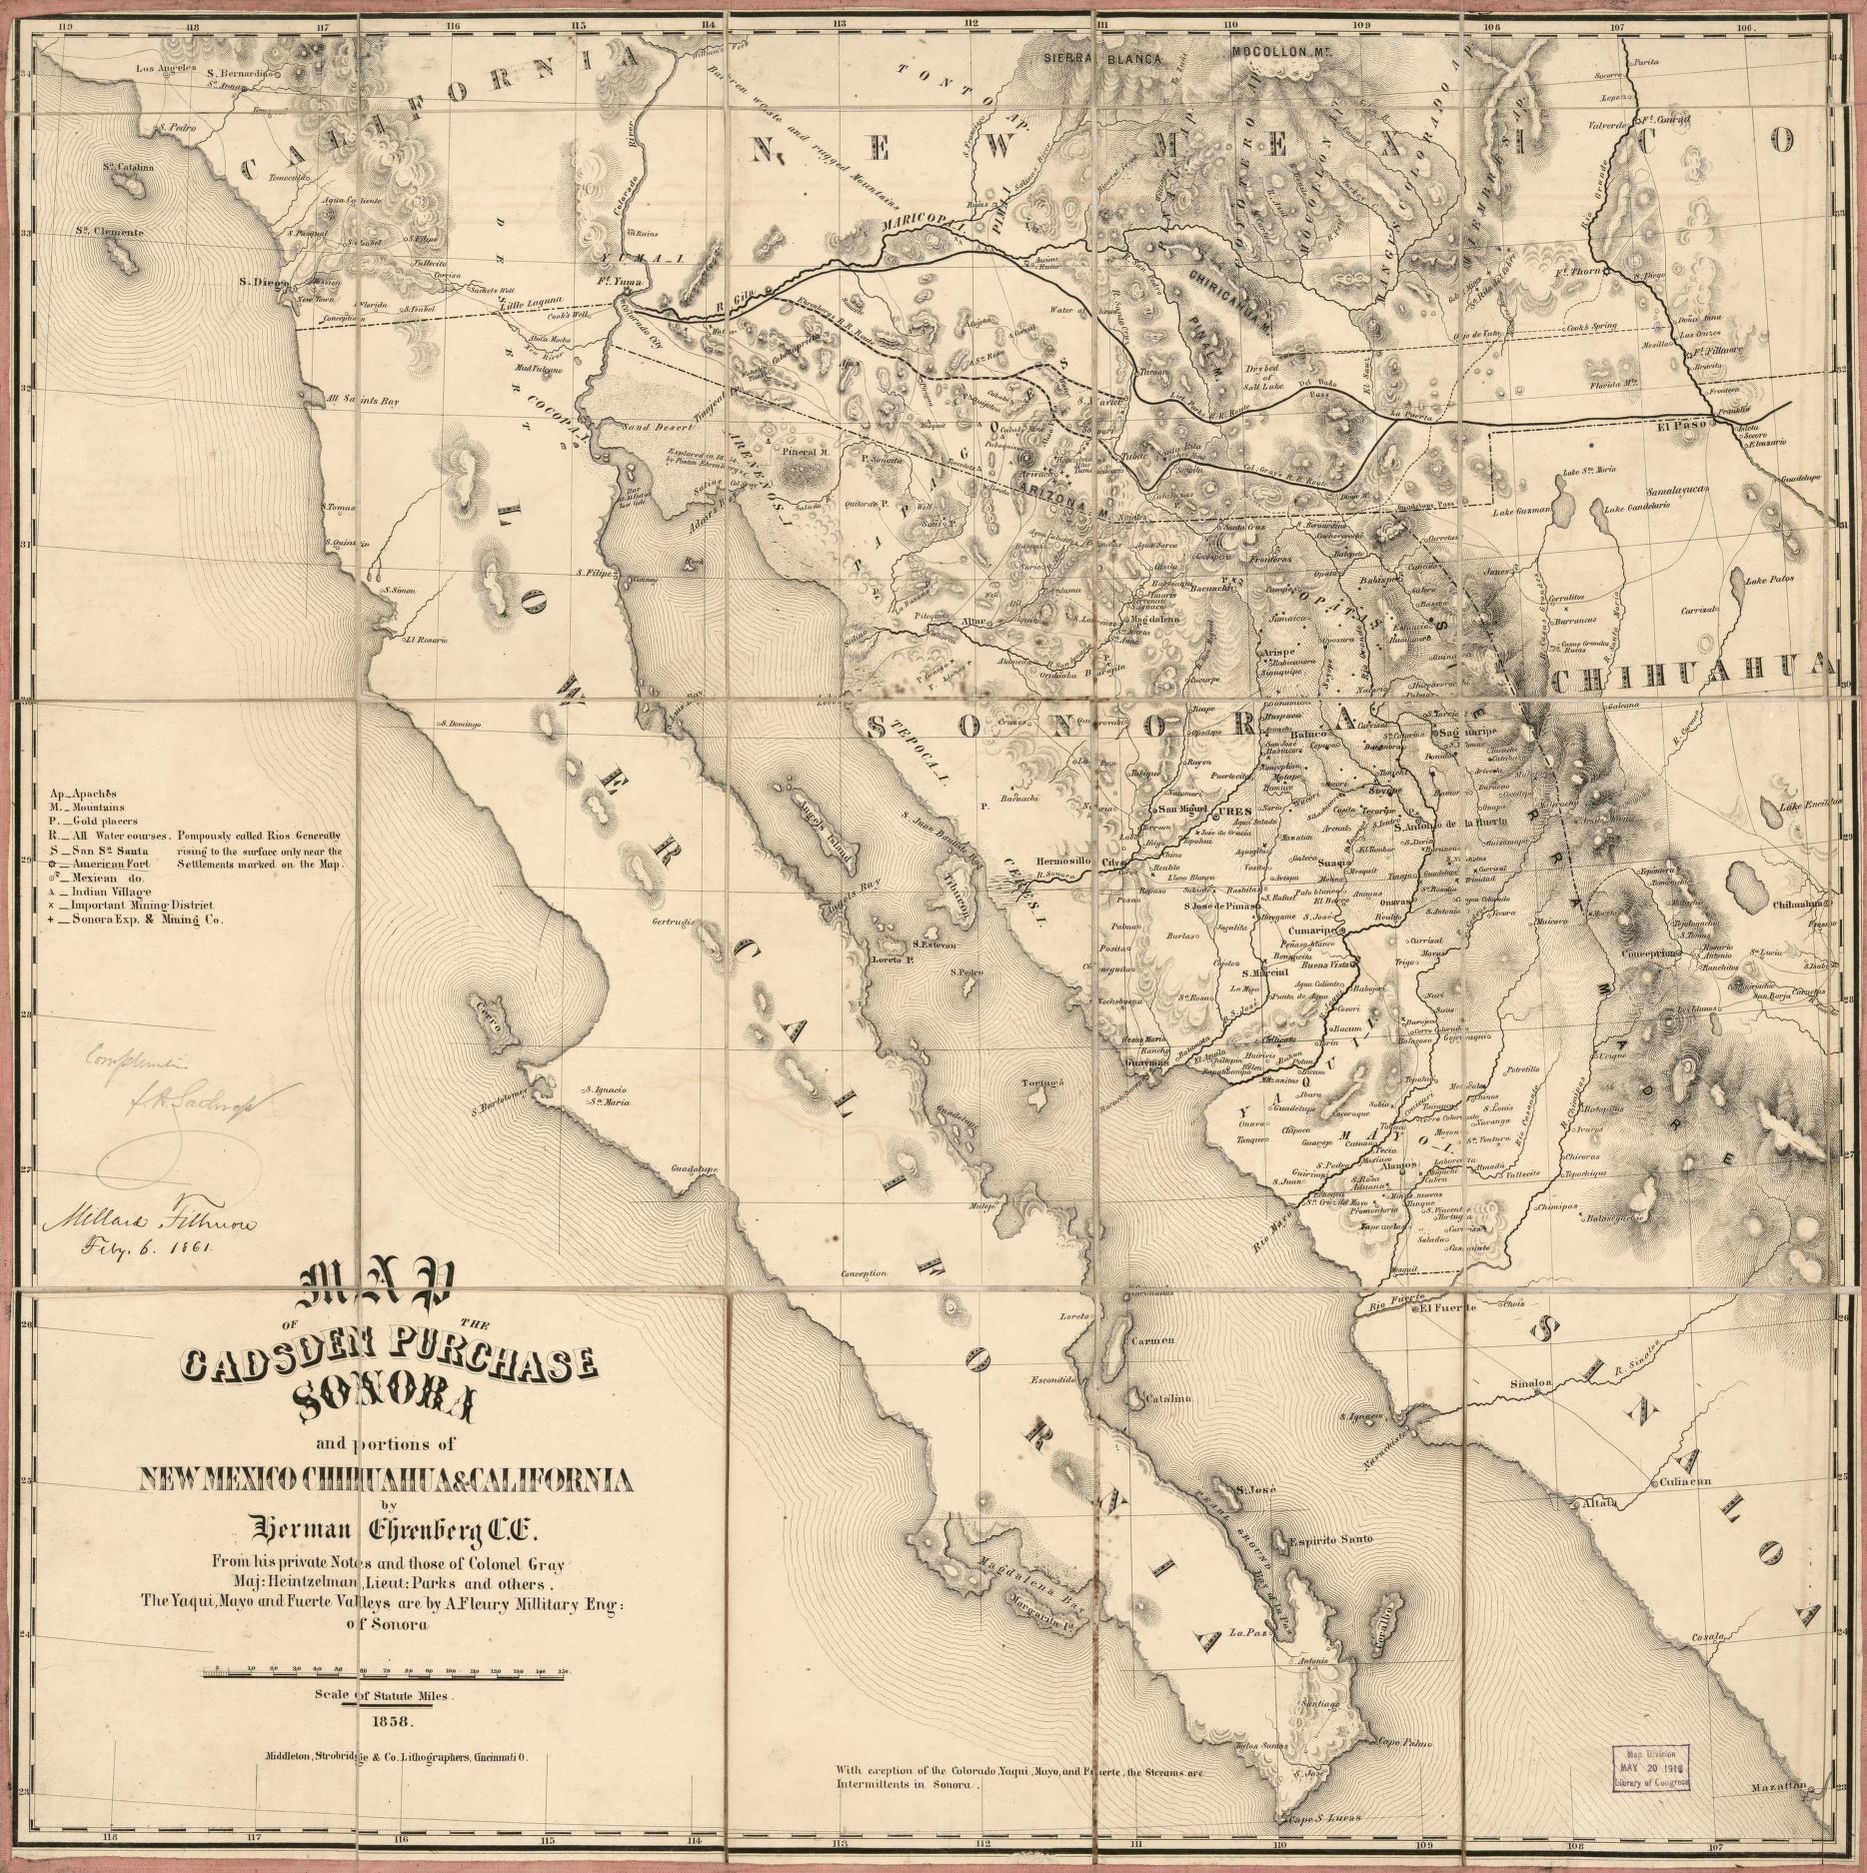 Map Of The Gadsden Purchase Sonora And Portions Of New